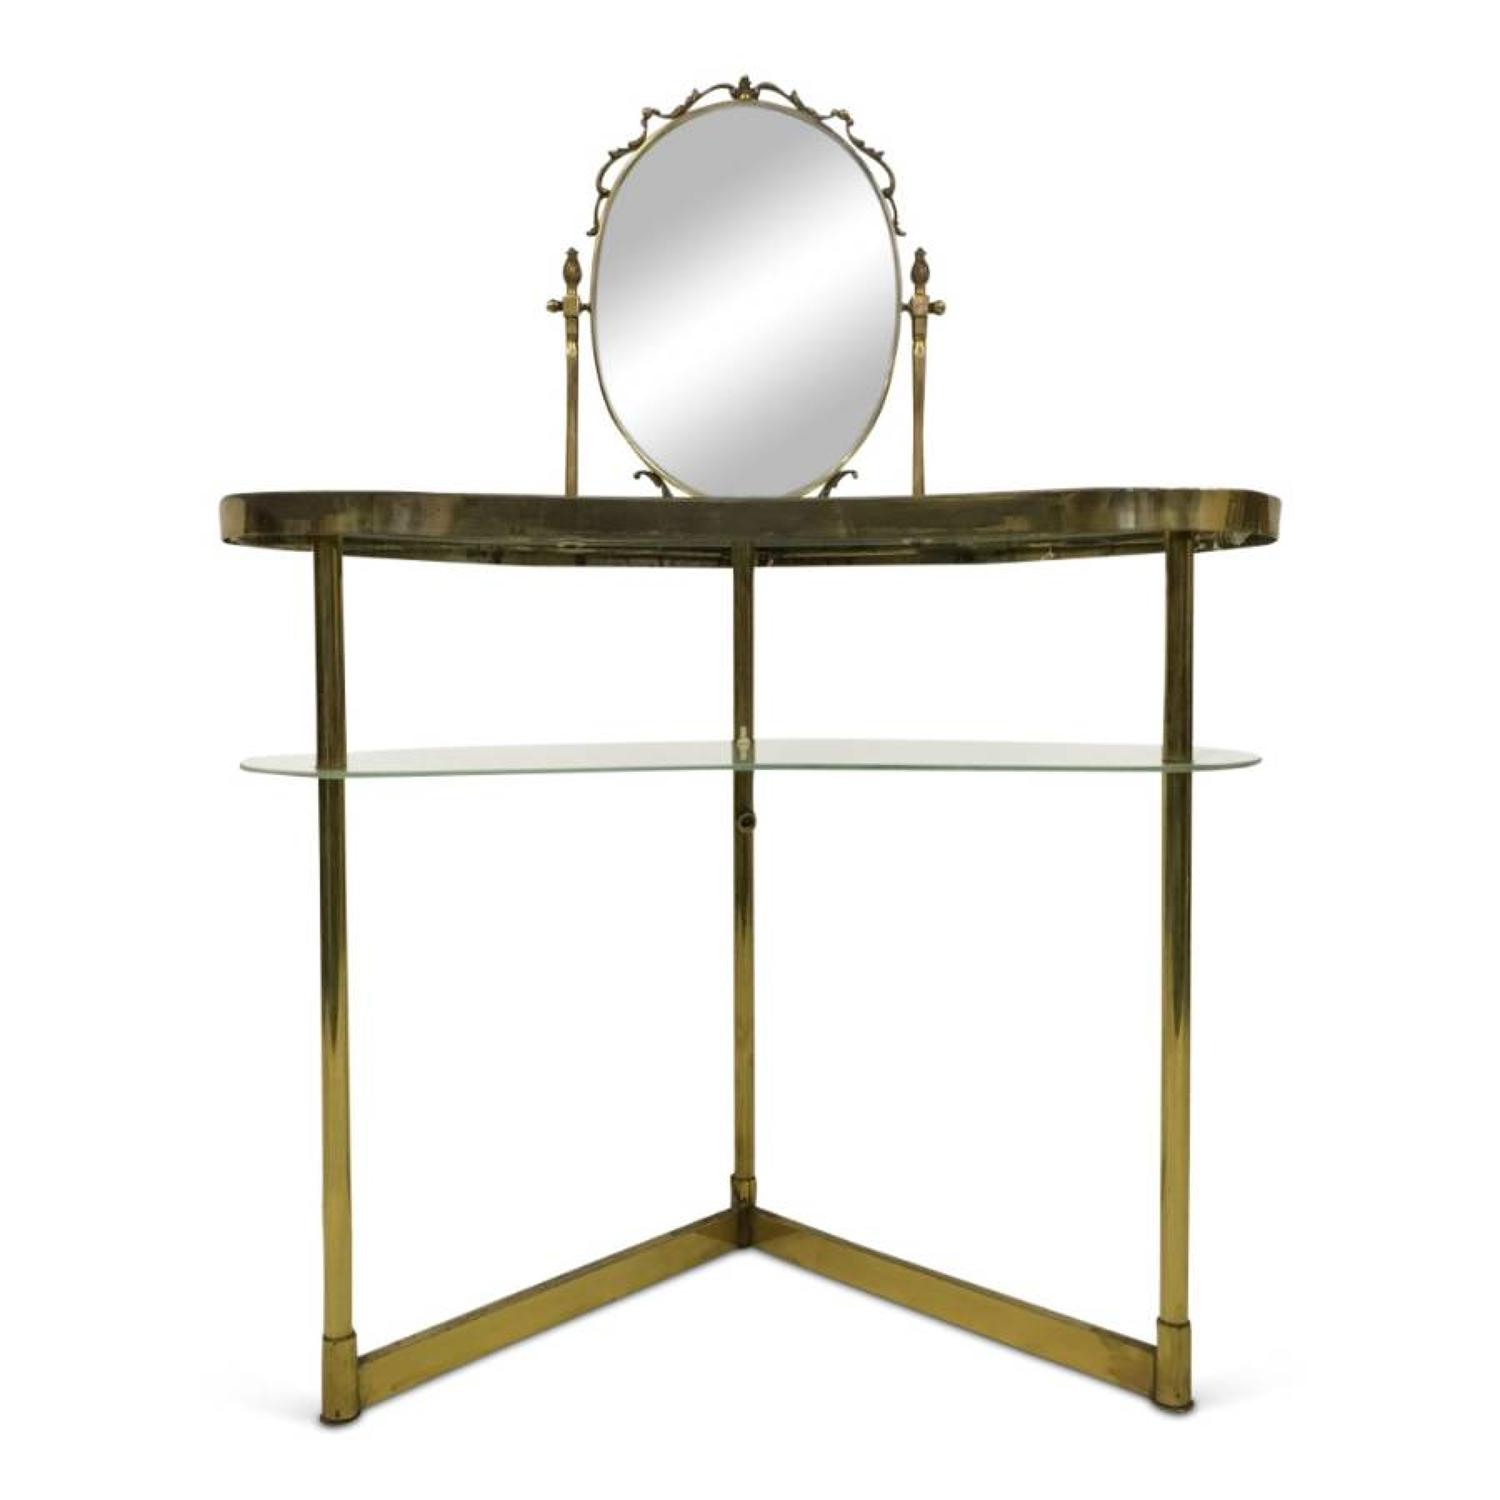 1950s Italian brass and glass vanity table with mirror